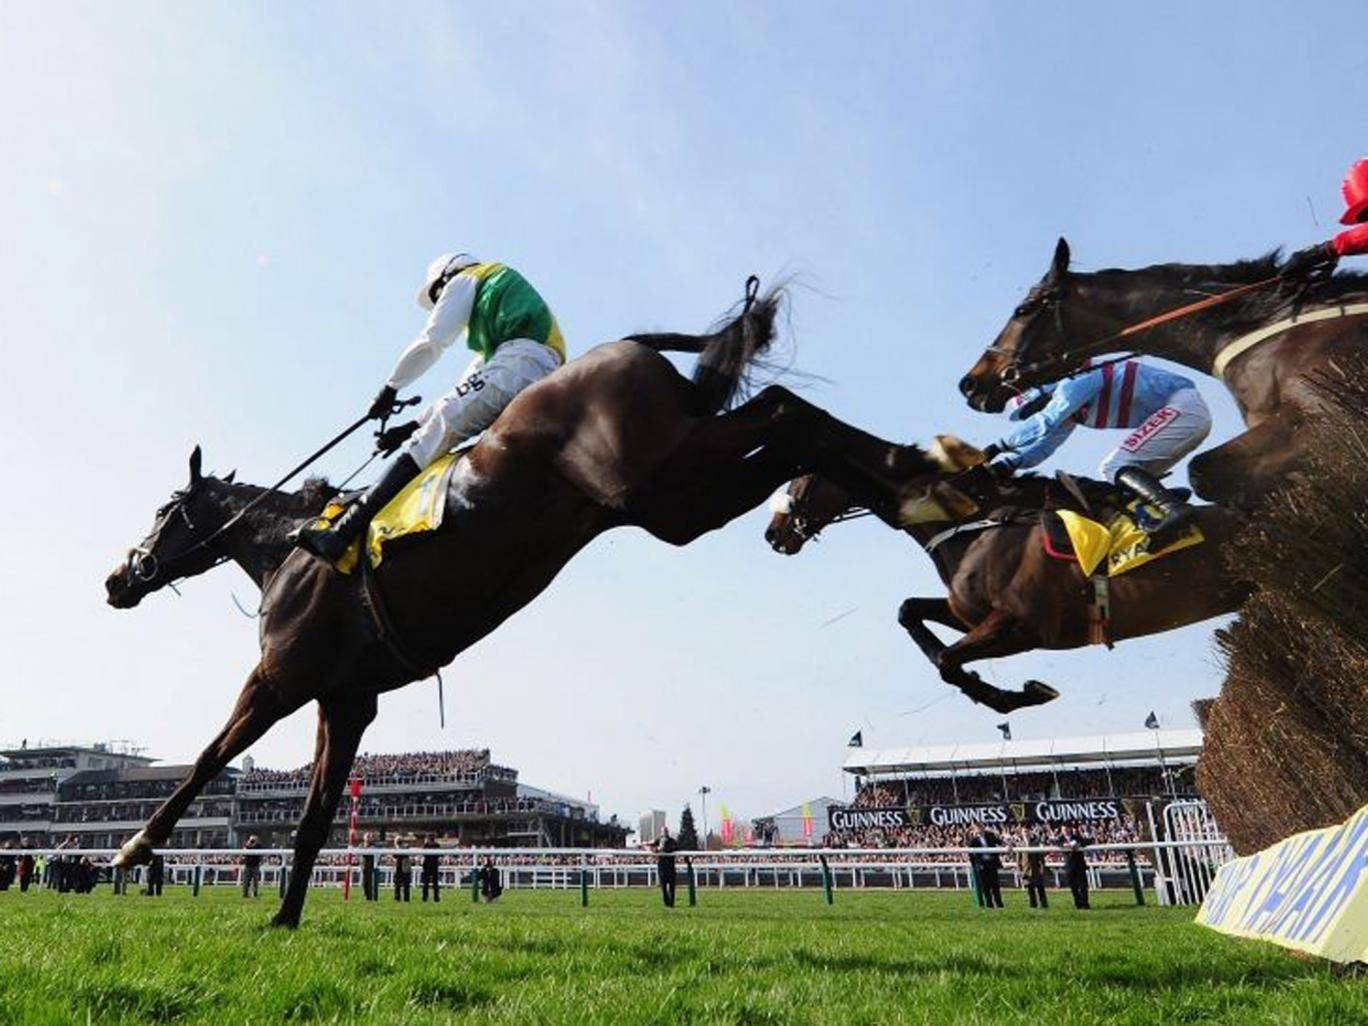 For the high jump?: Sponsors are beginning to wonder about the toxicity of the Festival and Grand National